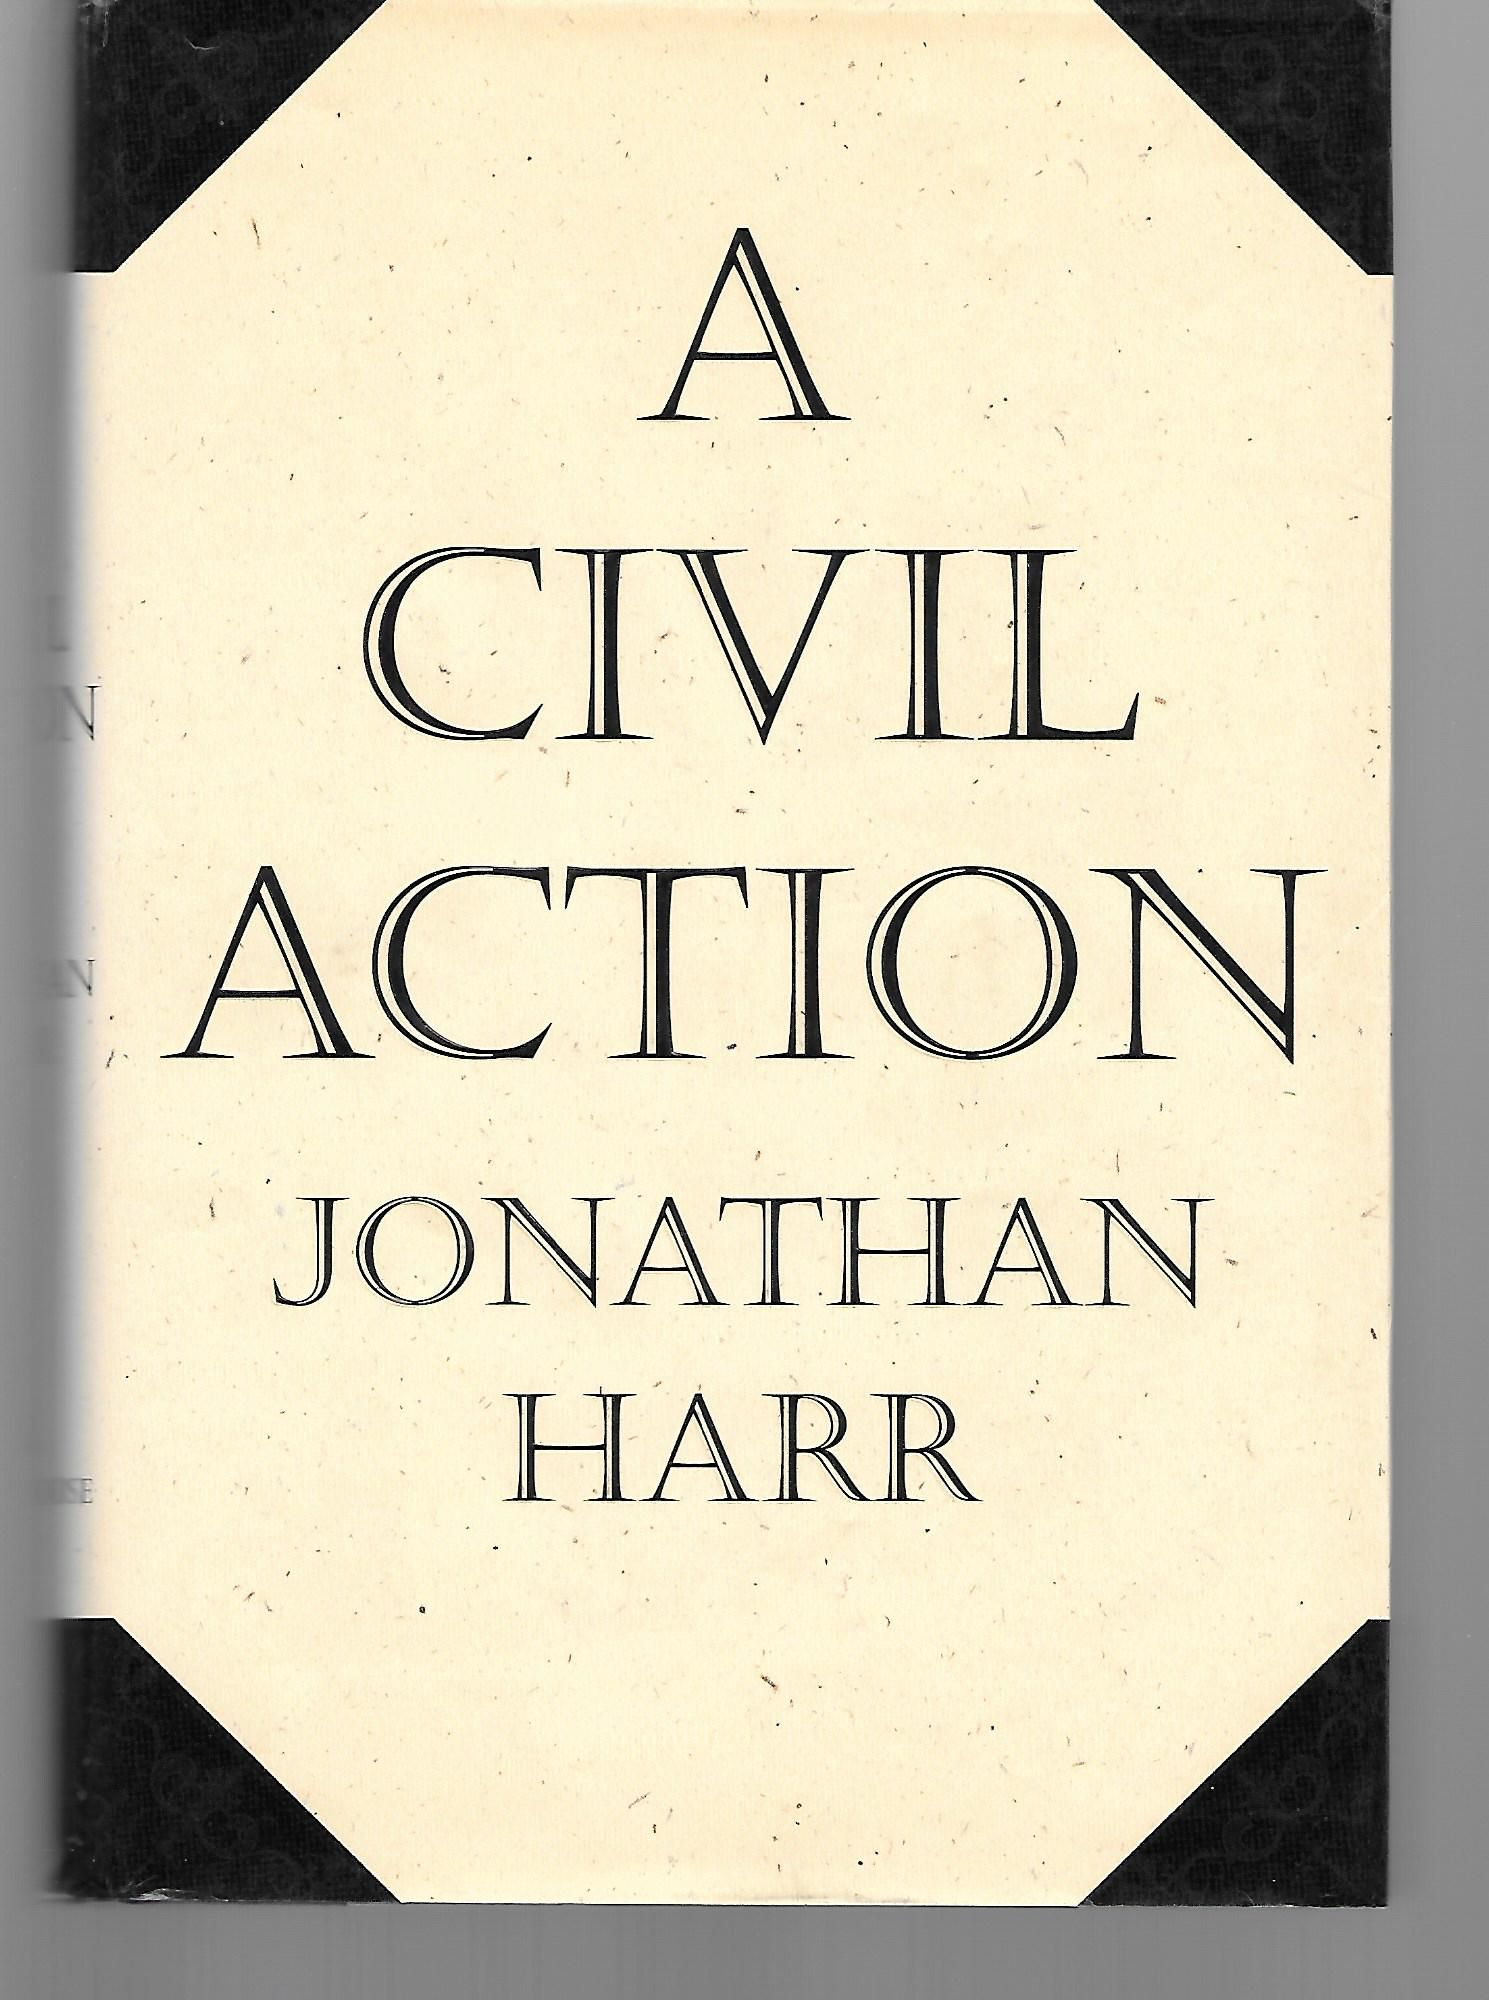 a review of jonathan harrs story a civil action A civil action by jonathan harr (audio cd 9780739321492) non-fiction story of a massachusetts lawyer who brought suit against two giants of industry to get compensation for his clients who suffered from cancer due to polluted drinking water.